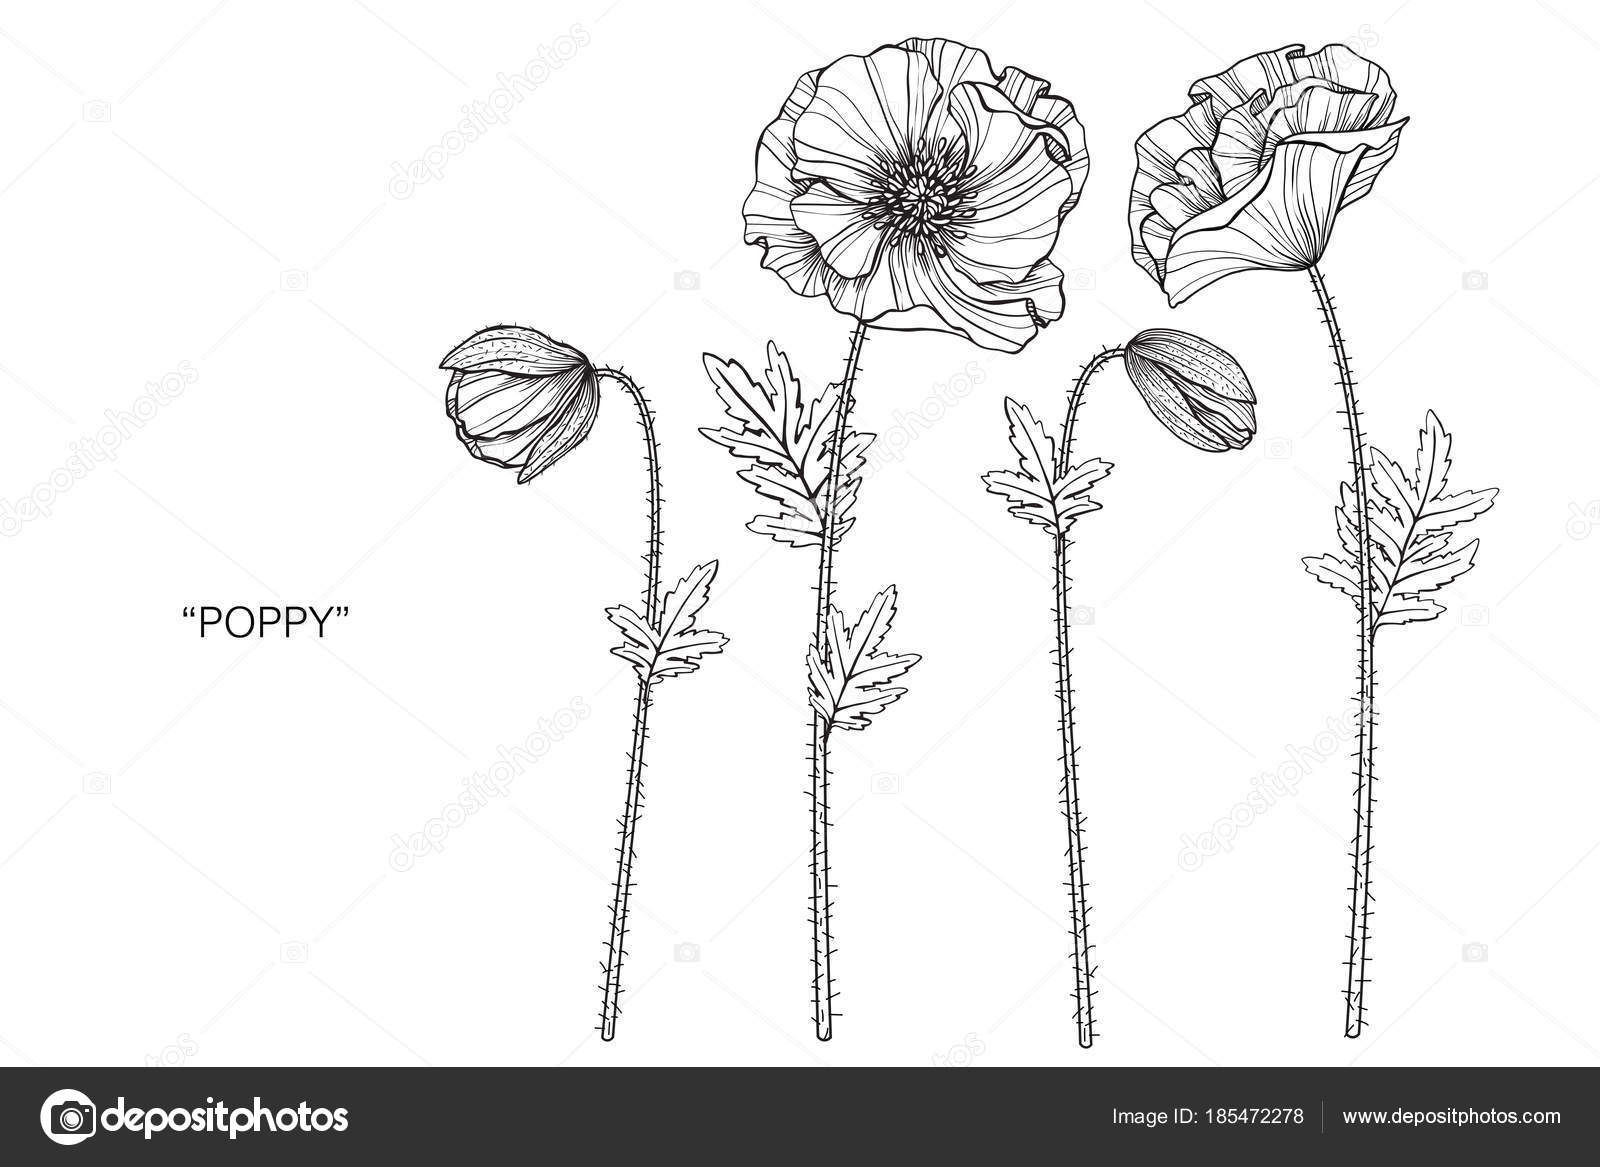 Poppy Flower Drawing Illustration Black White Line Art White